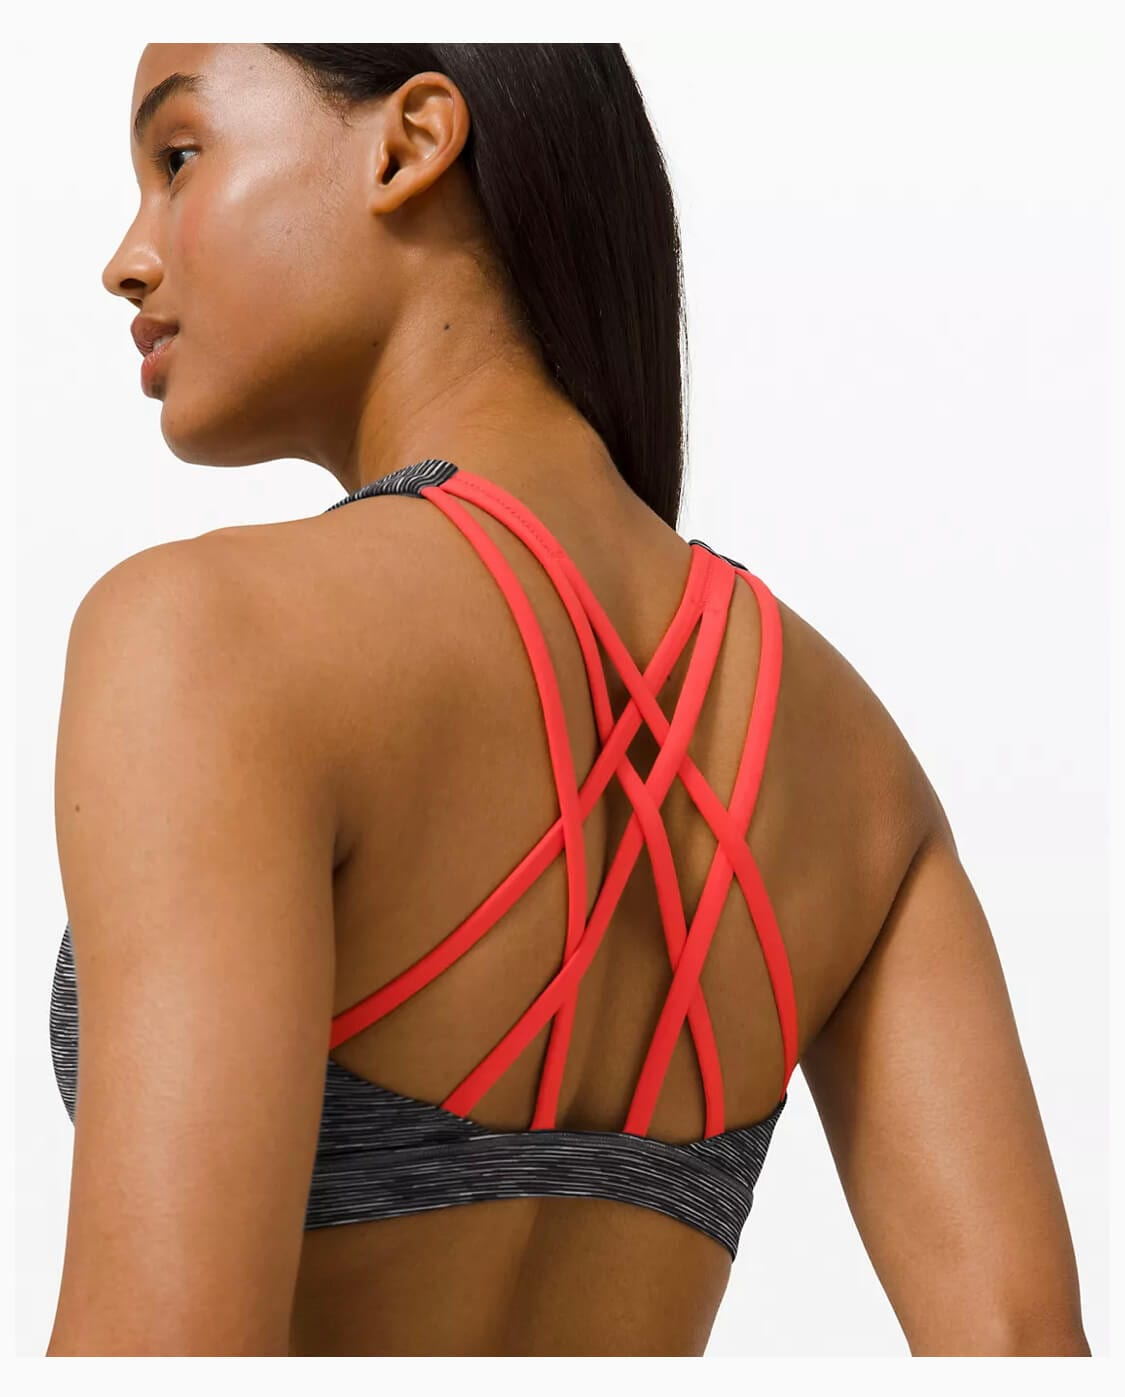 Strappy sports bra for hiking